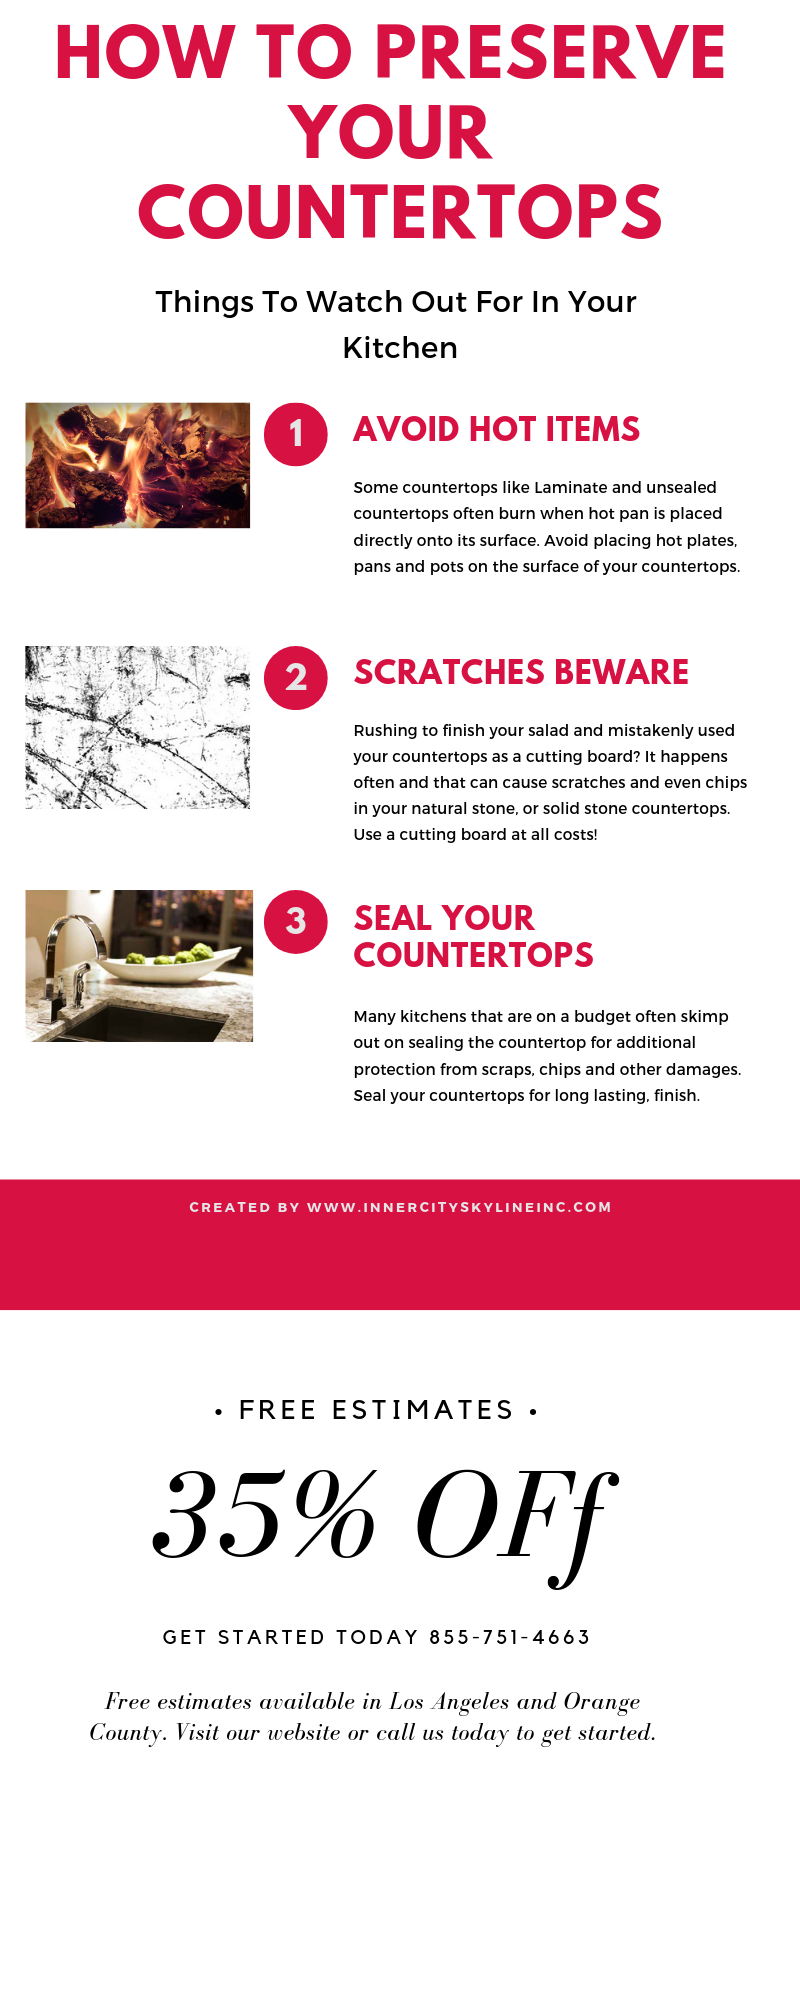 Countertop Infograph on preserving